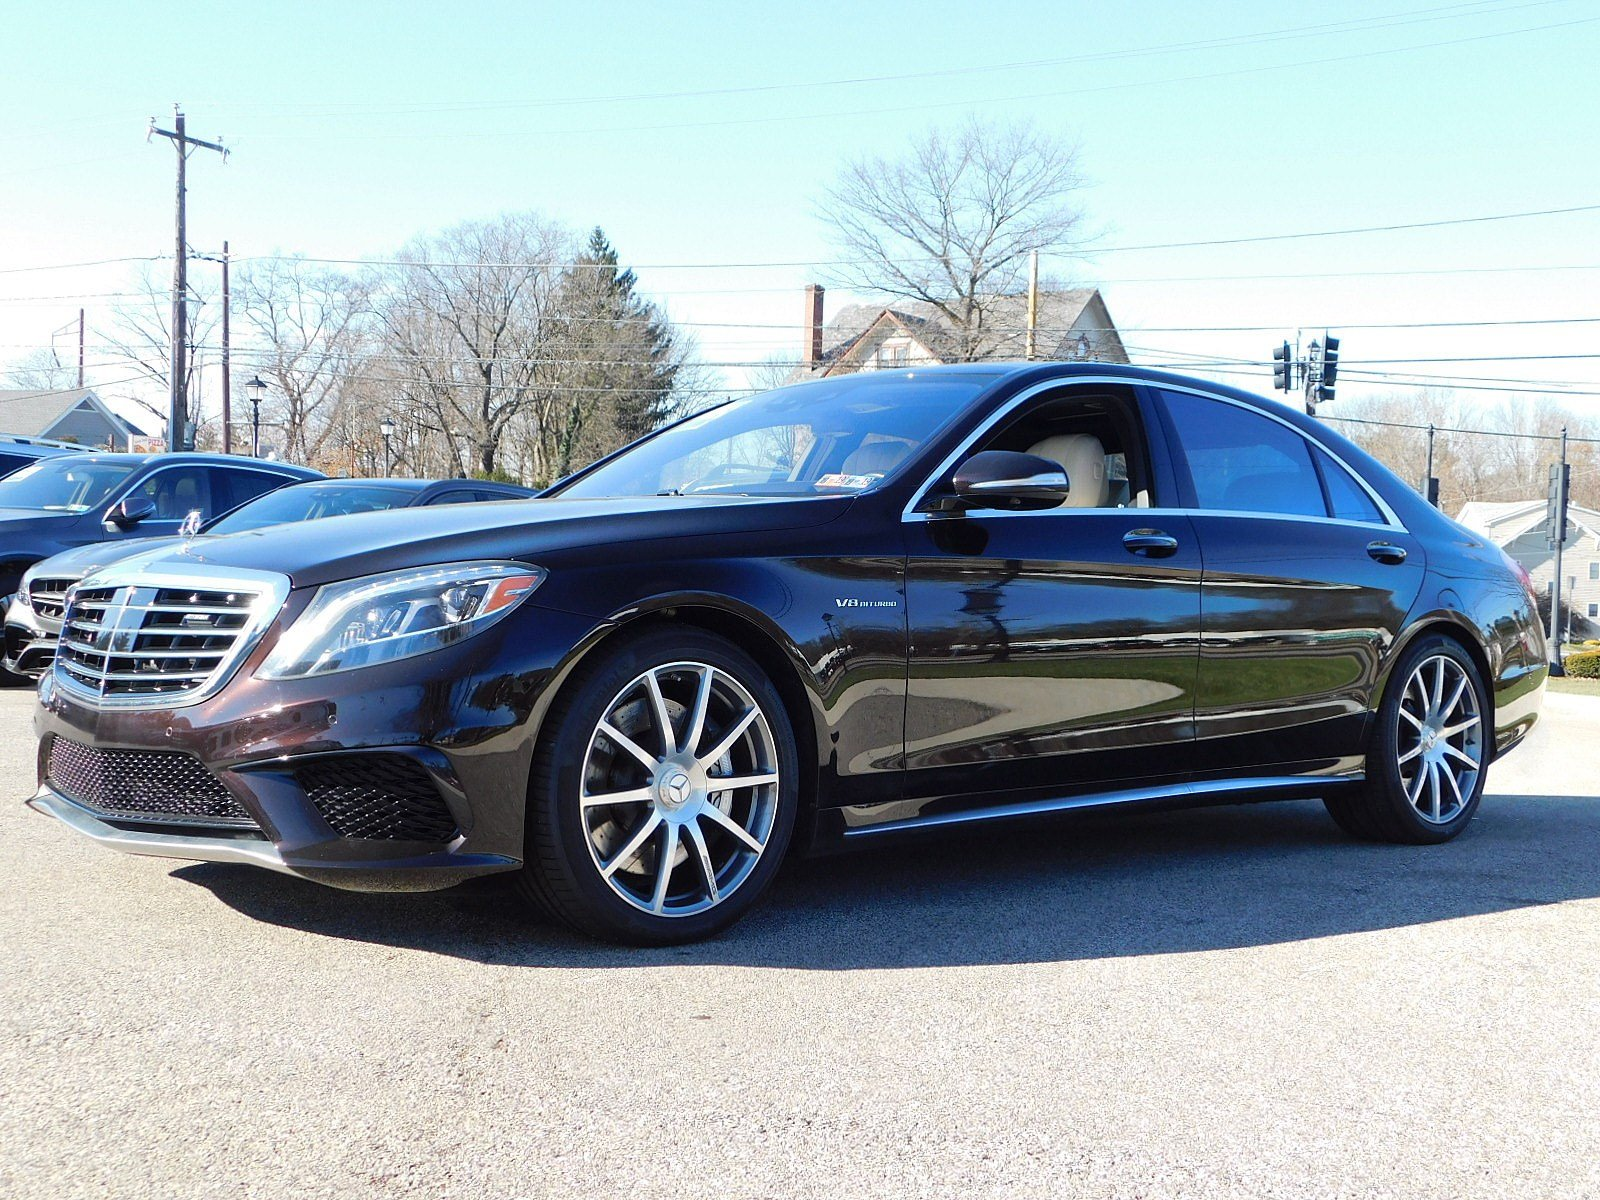 Certified Pre Owned 2015 Mercedes Benz S Class S 63 AMG 4D Sedan in